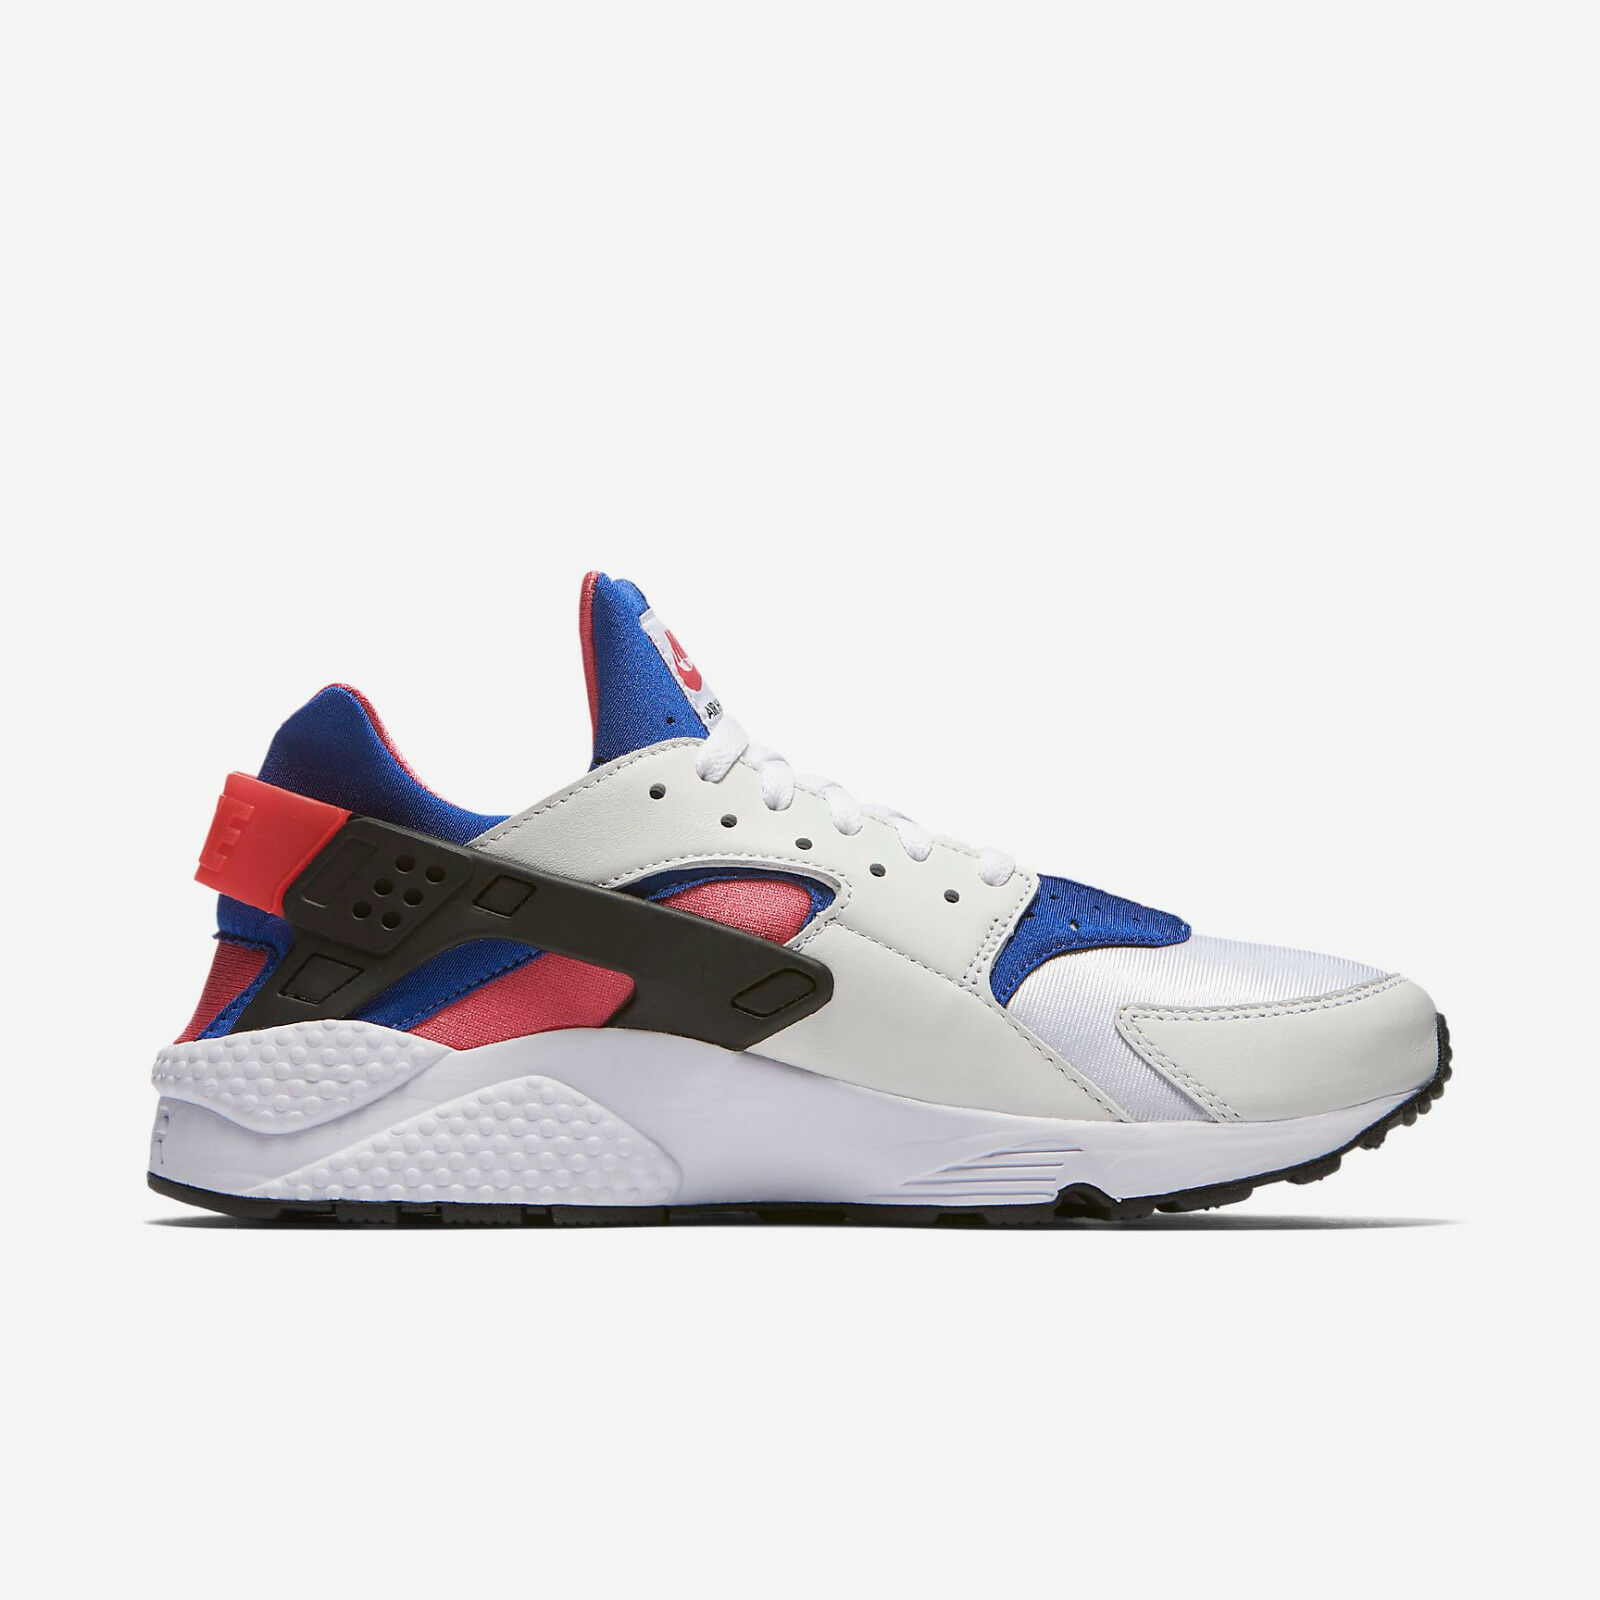 NIB NIKE Homme  AIR HUARACHE RUN '91 QS AH8049 2018 LIFESTYLE Chaussures MSRP 130